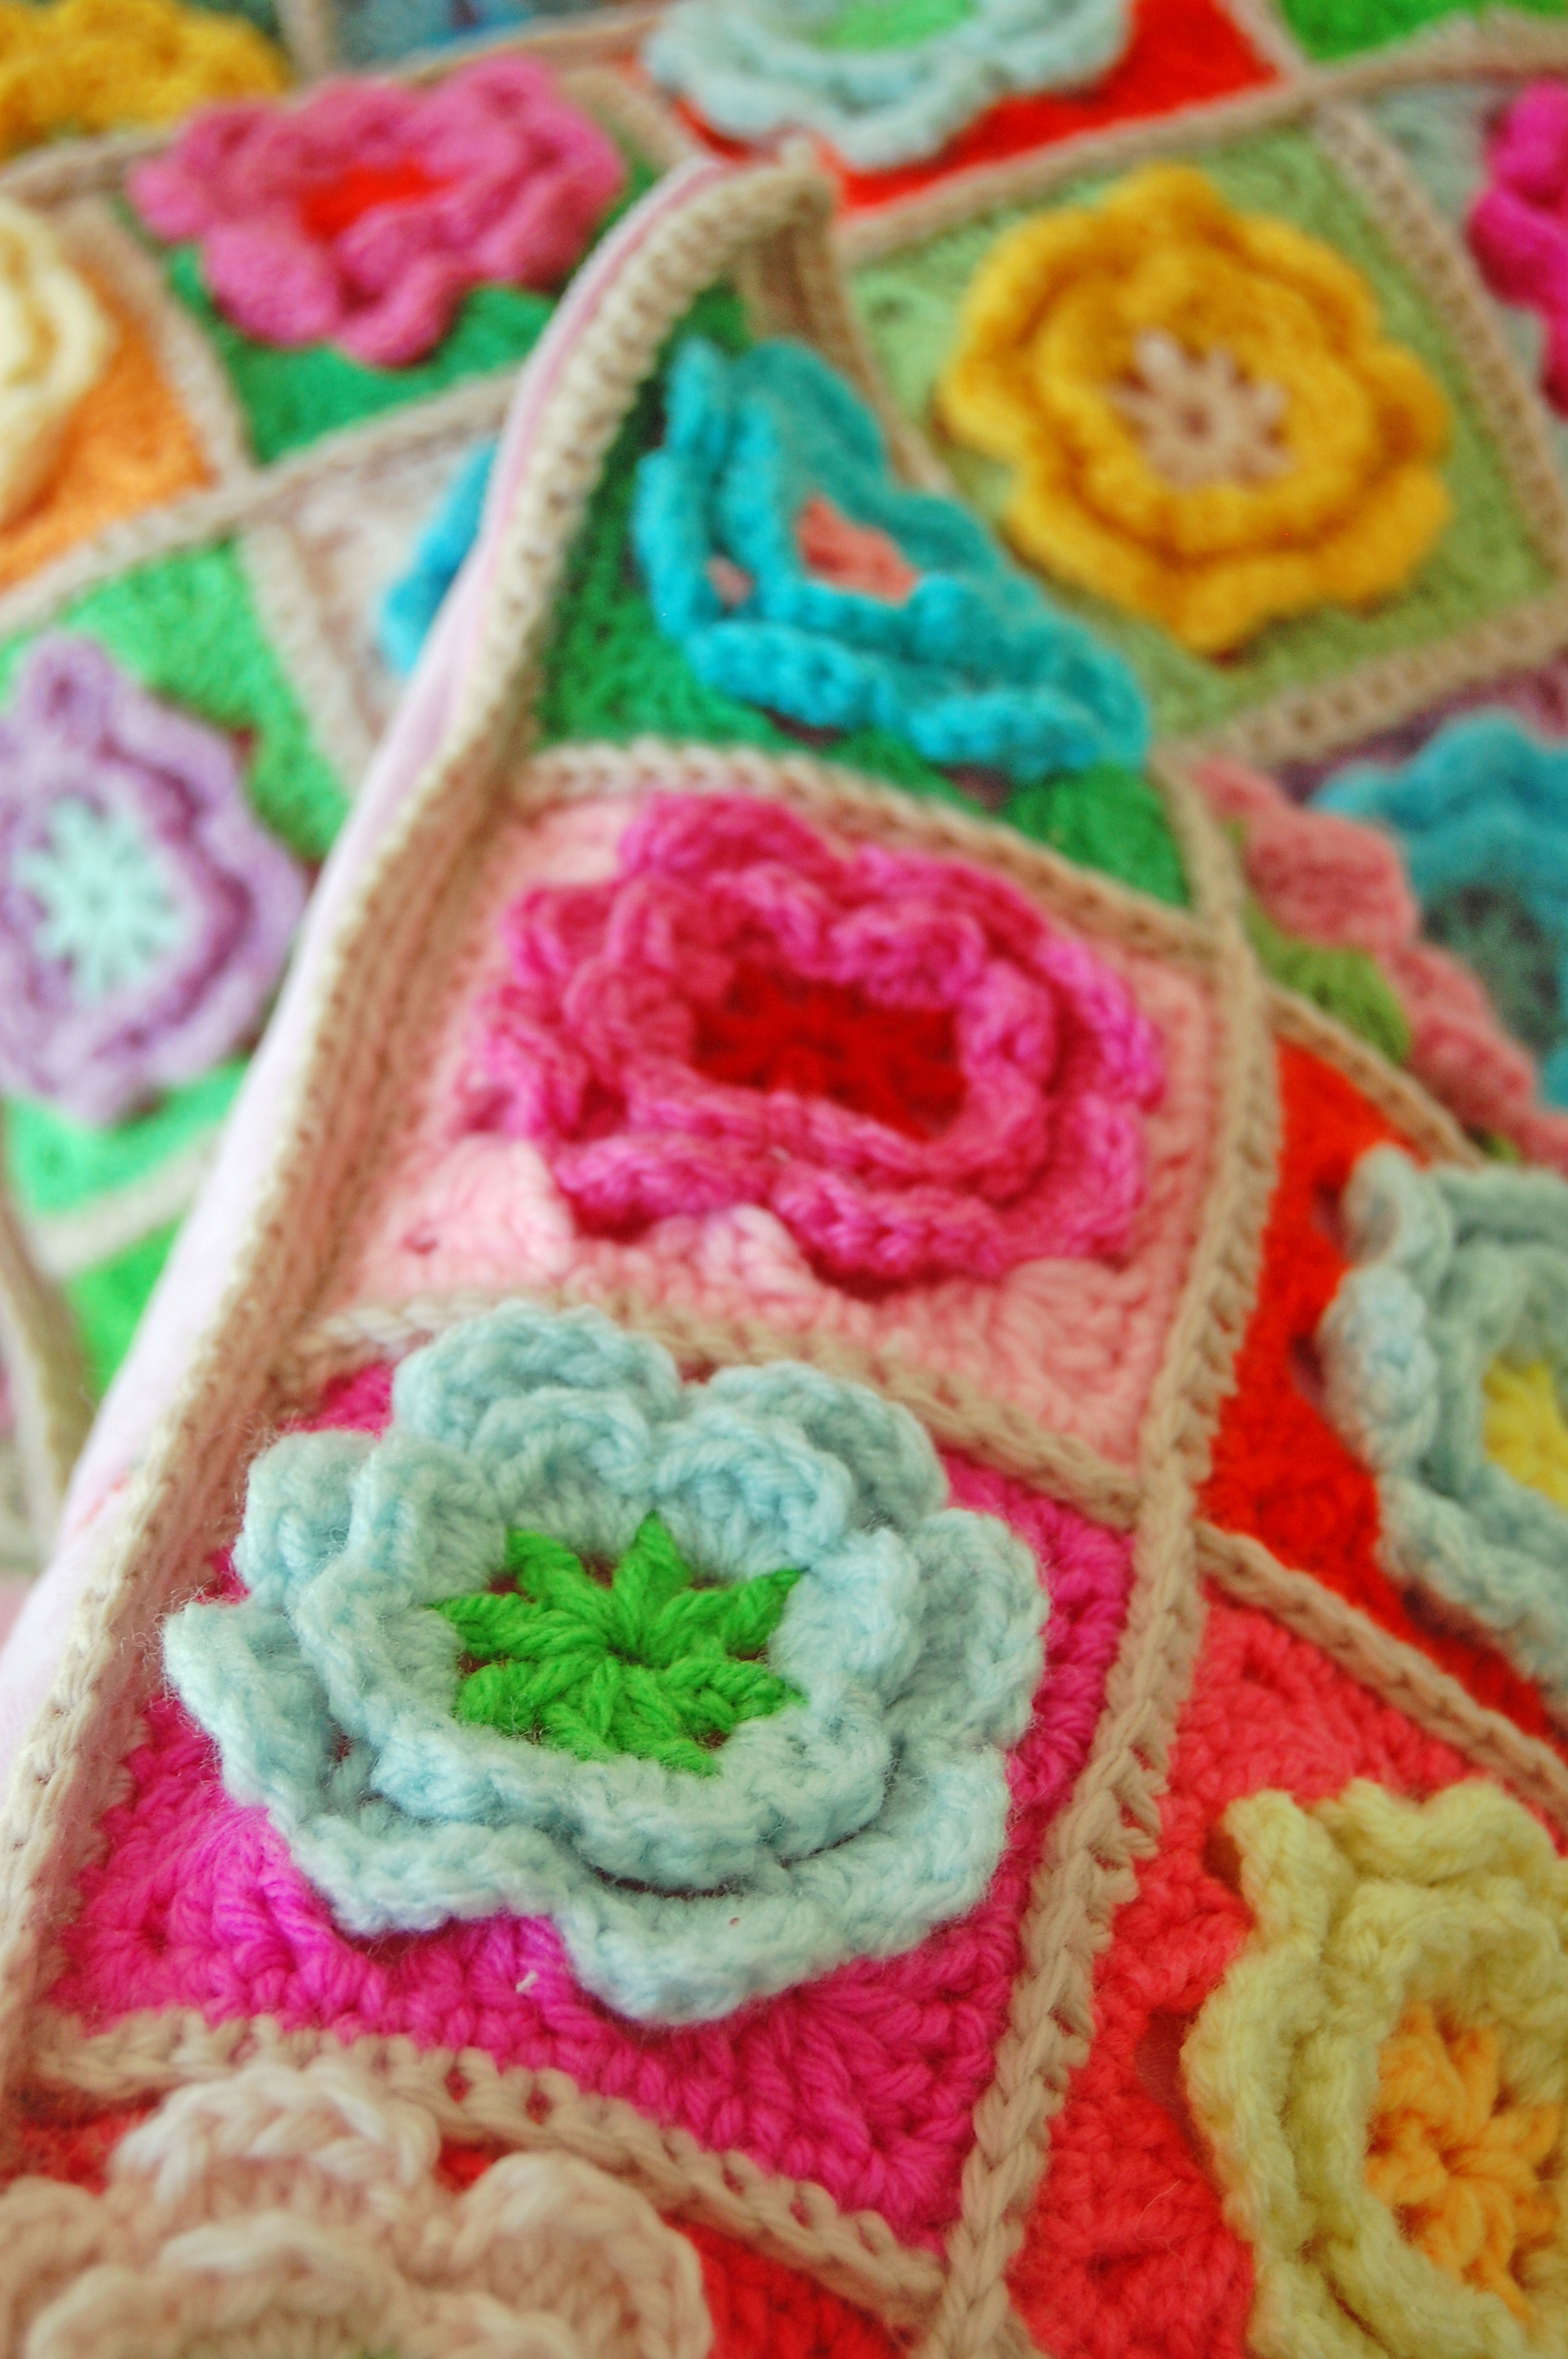 Crochet Jacobsen Rose Doily Pattern